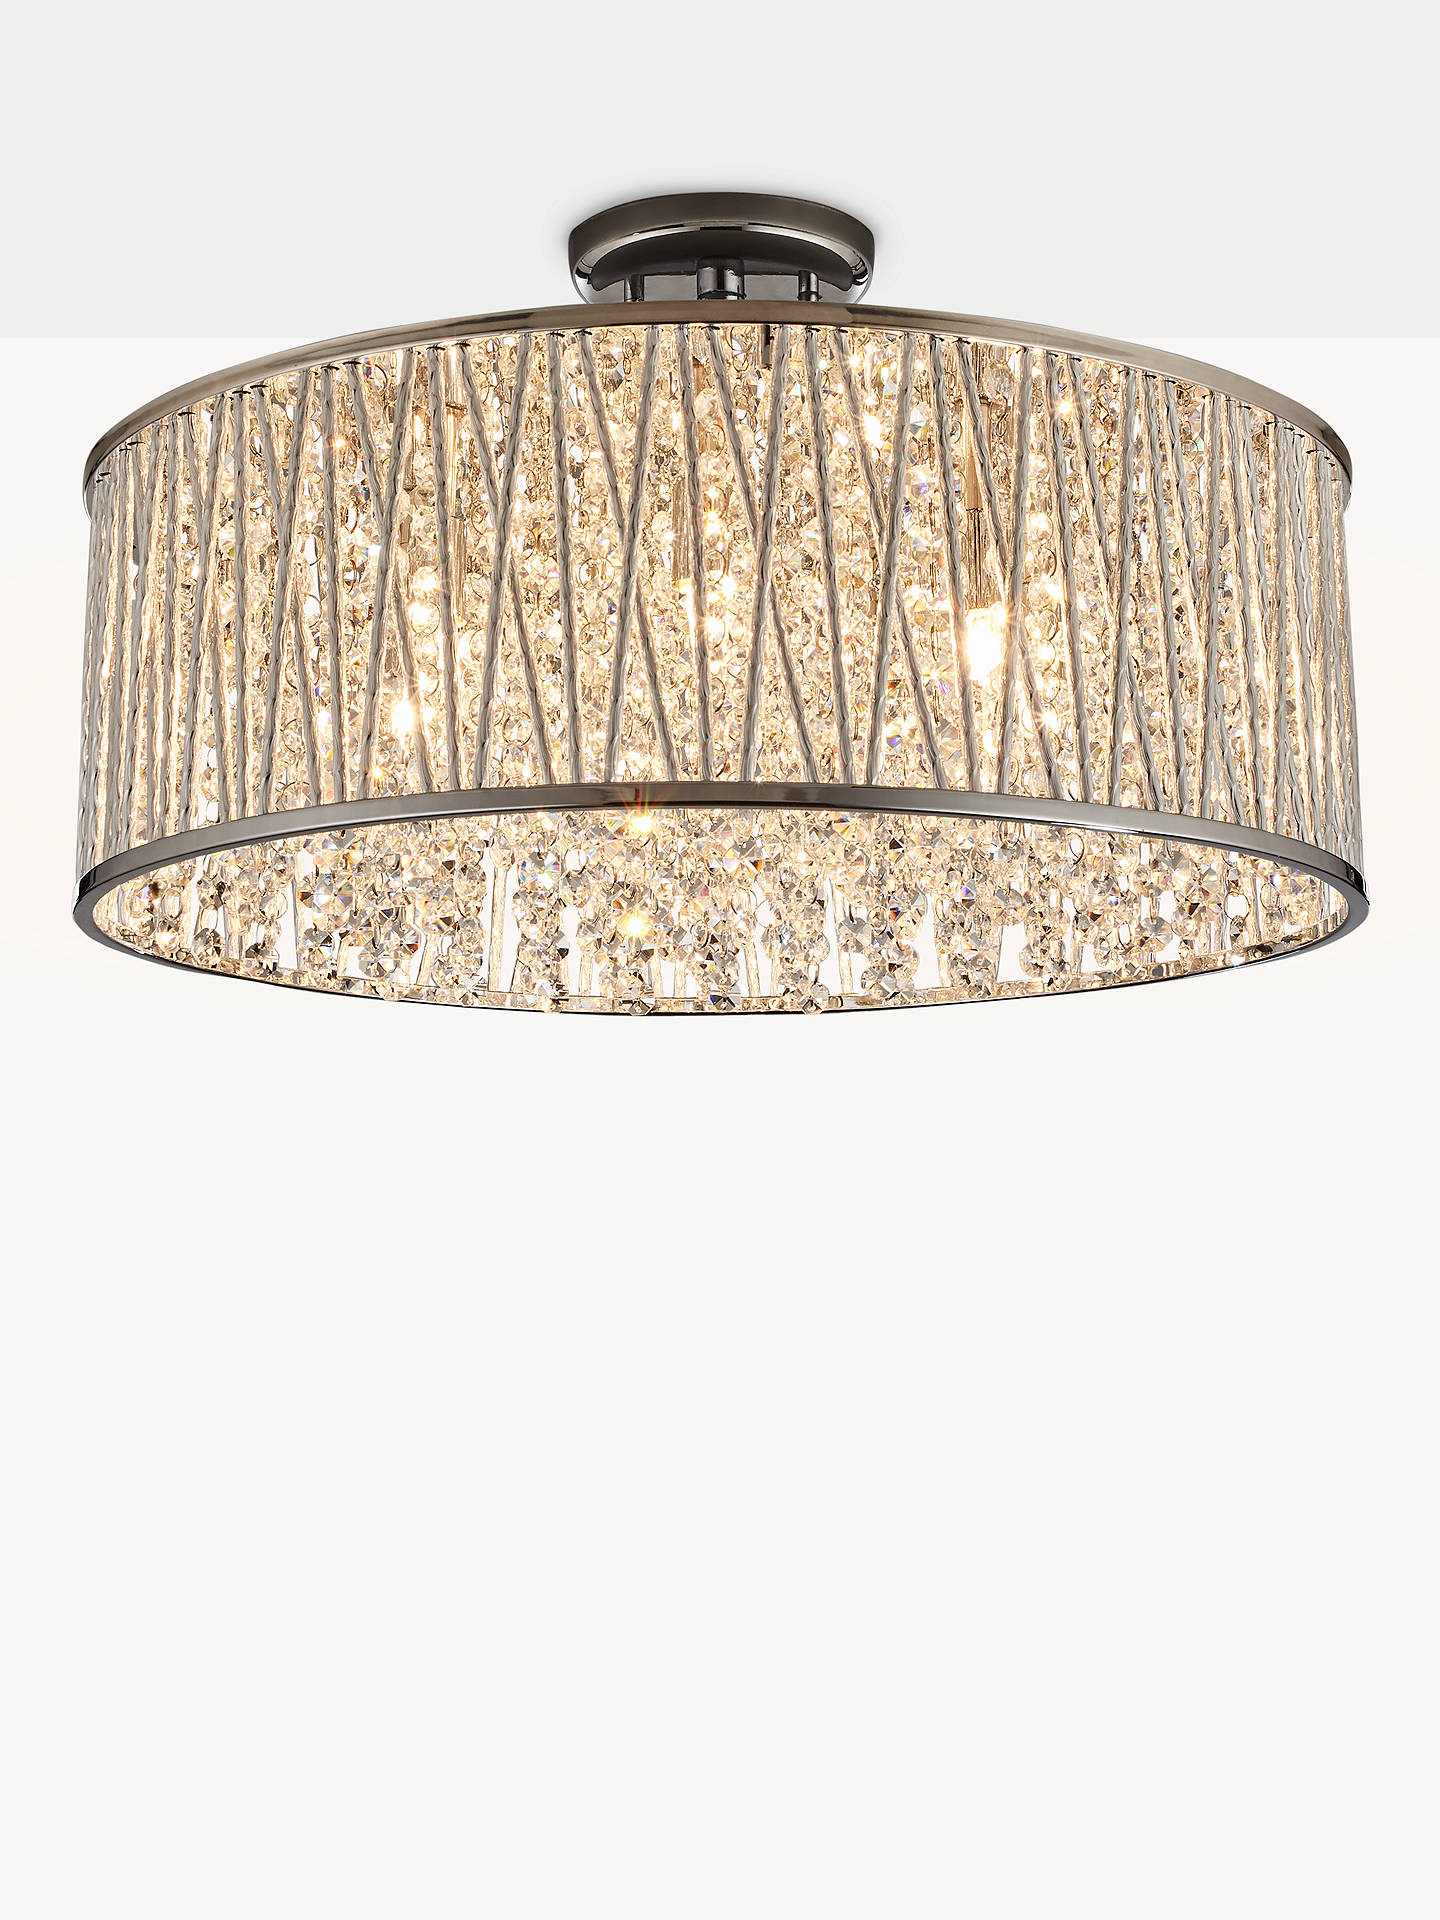 BuyJohn Lewis & Partners Emilia Large Crystal Drum Flush Ceiling Light Online at johnlewis.com